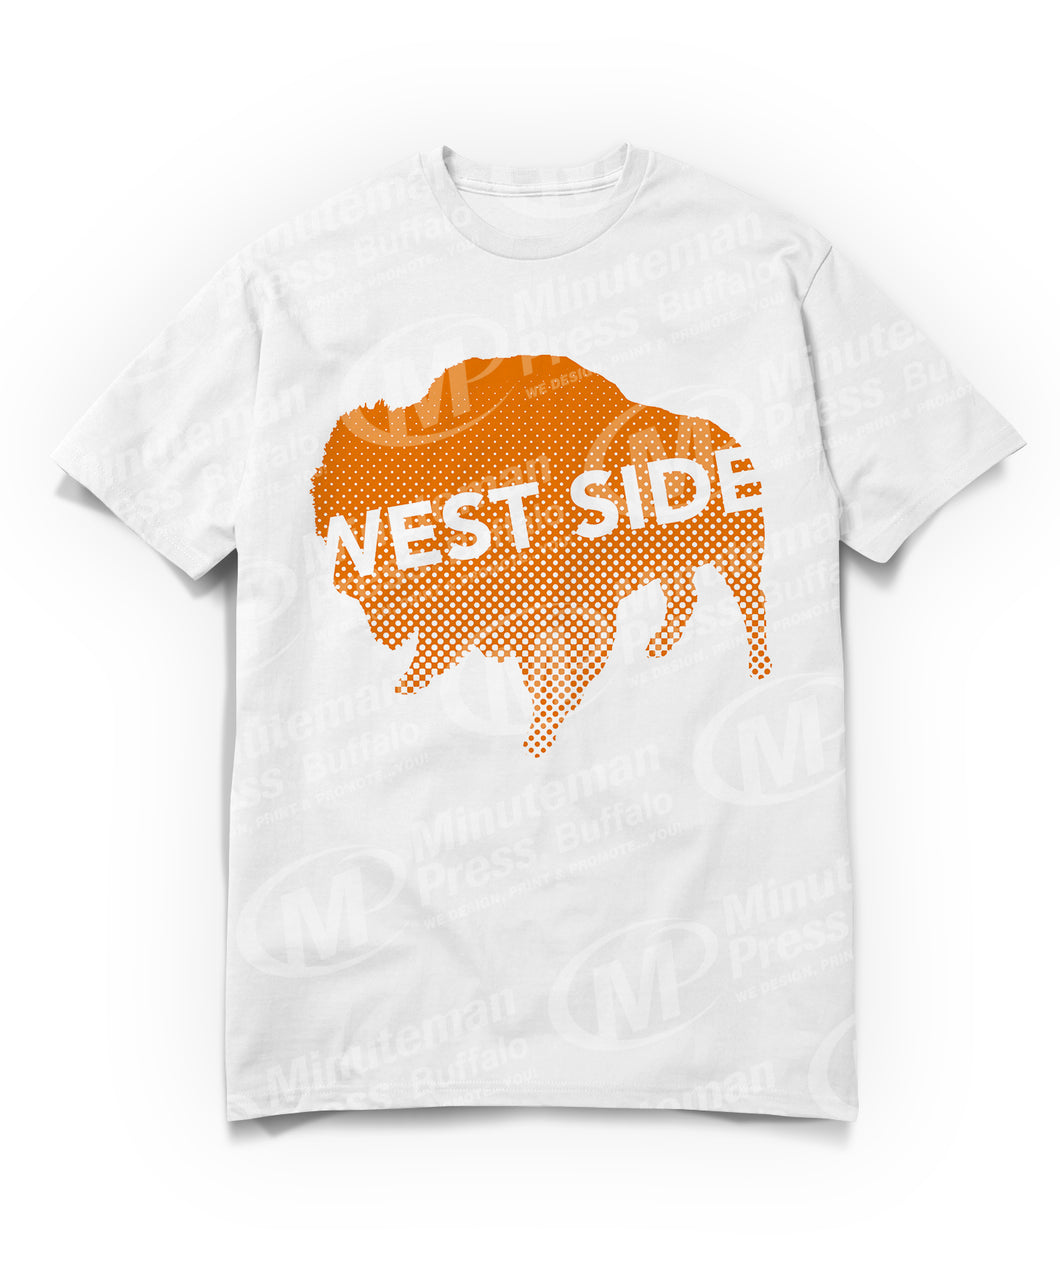 west side text on orange buffalo on white t-shirt